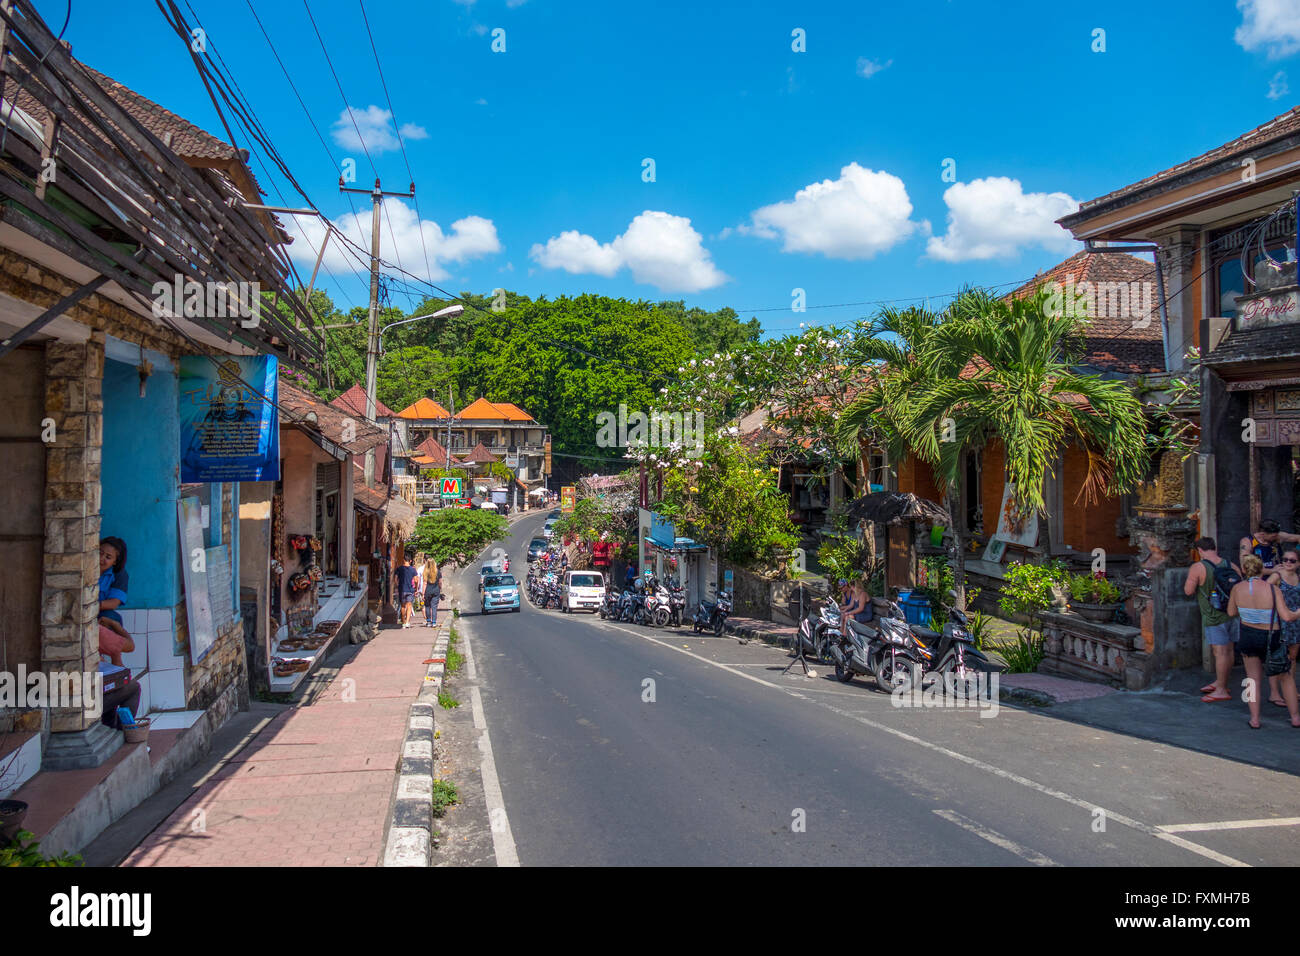 Street View of Ubud, Bali, Indonesia - Stock Image